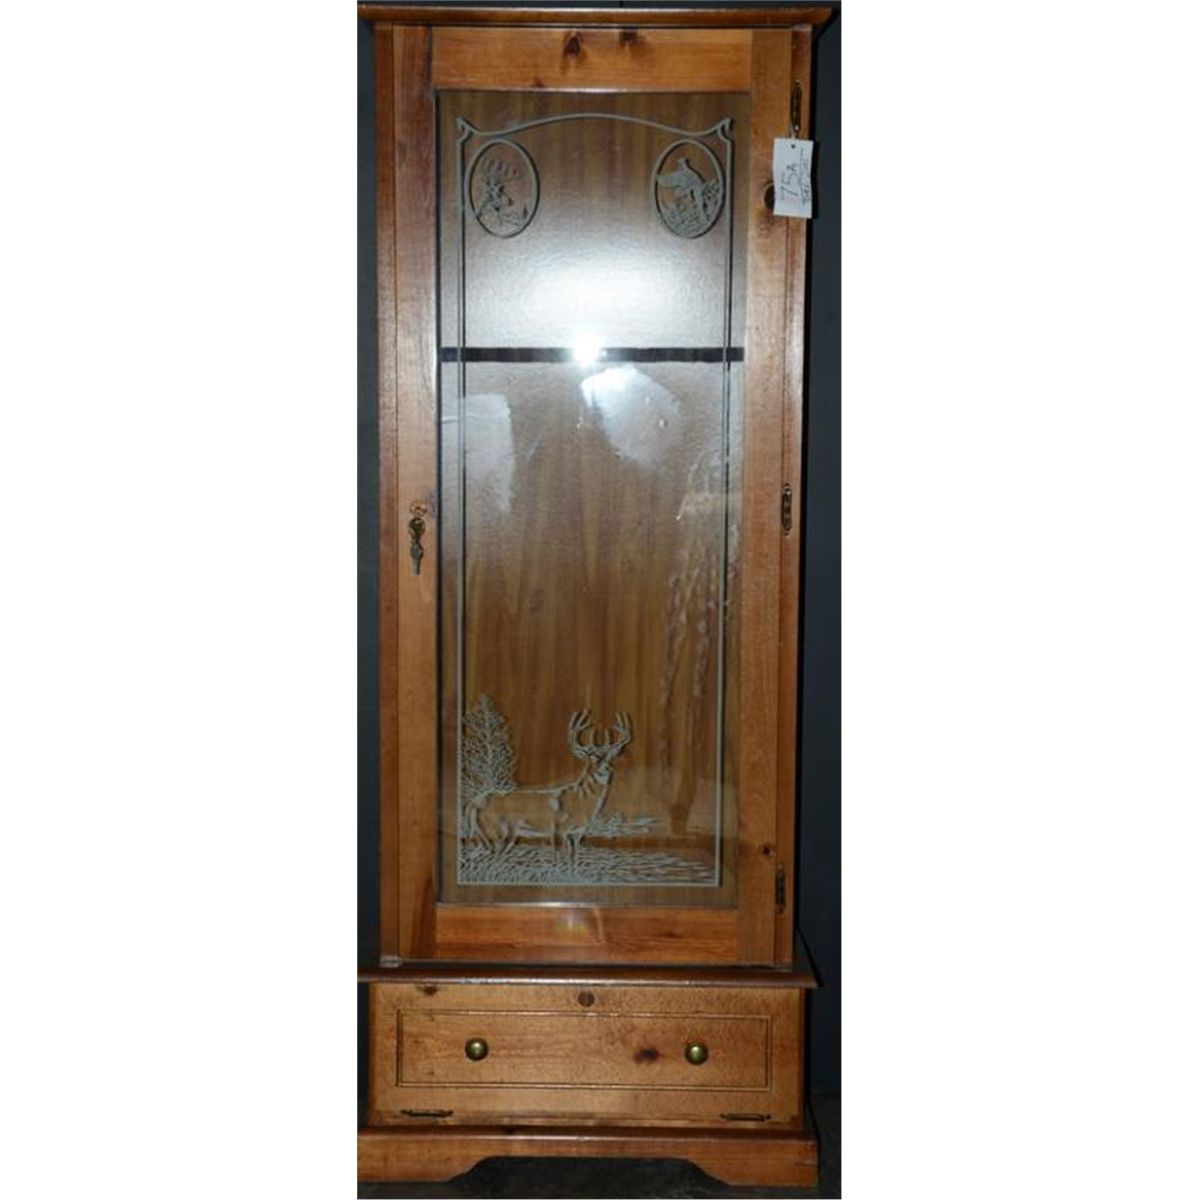 Beautiful long arm gun cabinet made of wood and with a glass front door;  interior can accommodate - Beautiful Long Arm Gun Cabinet Made Of Wood And With A Glass Front